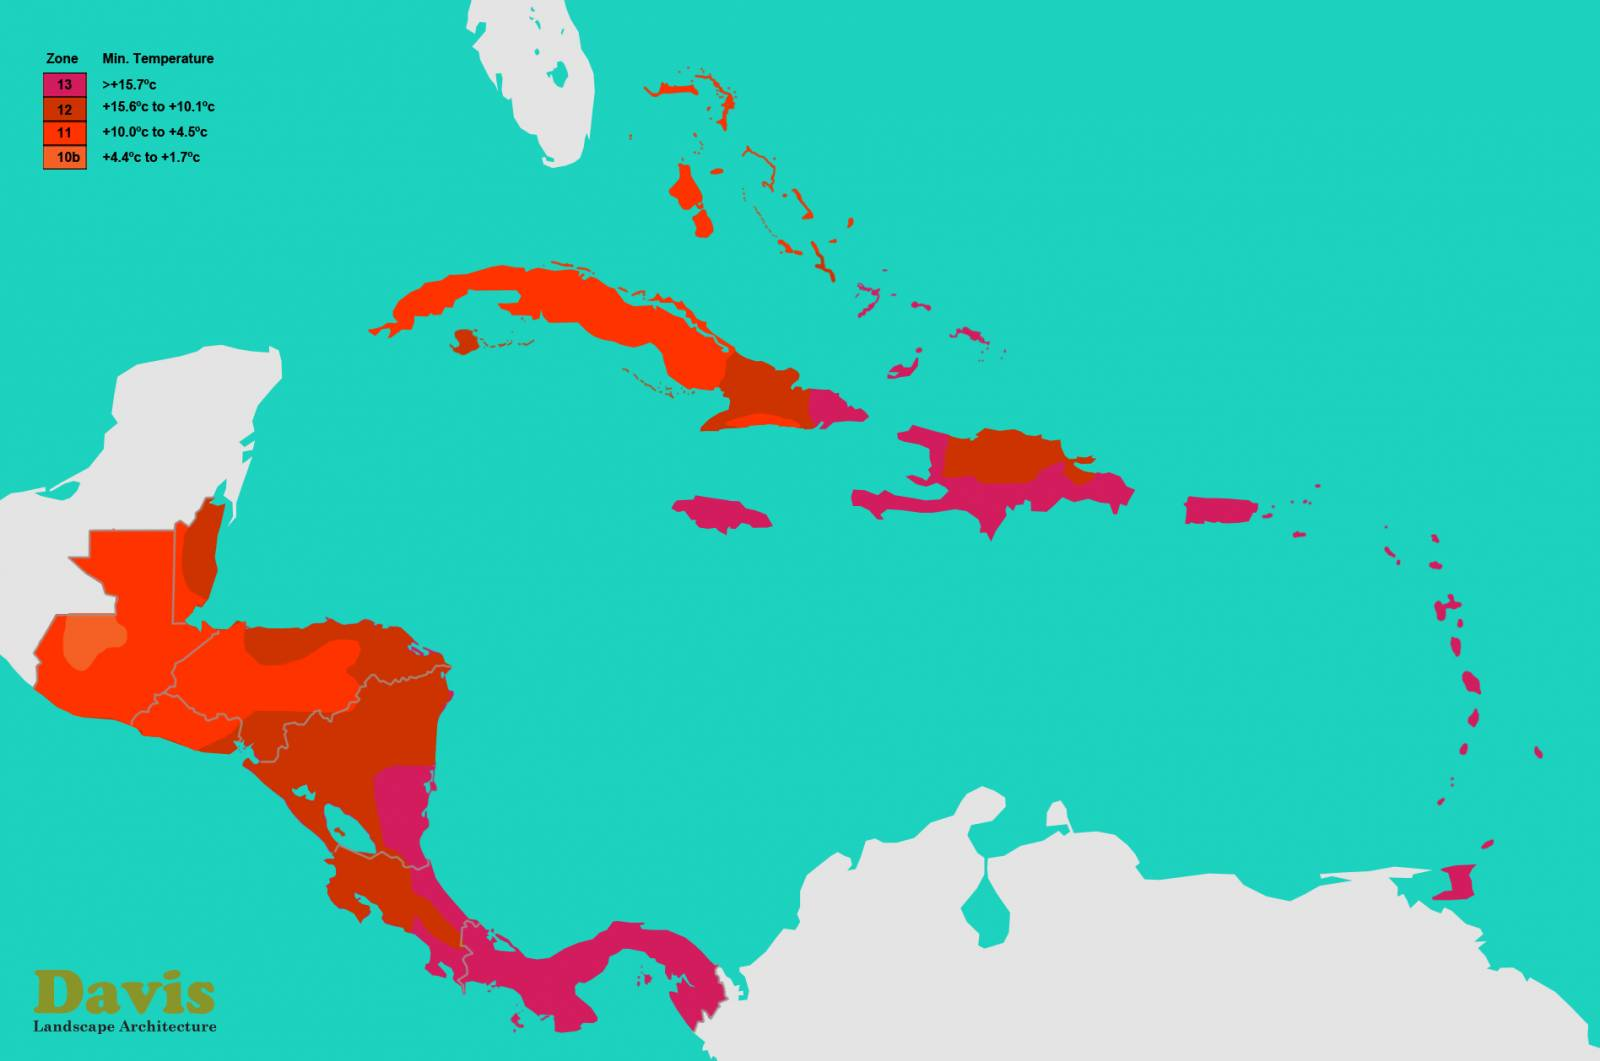 Central America and the Caribbean Plant Hardiness Zones